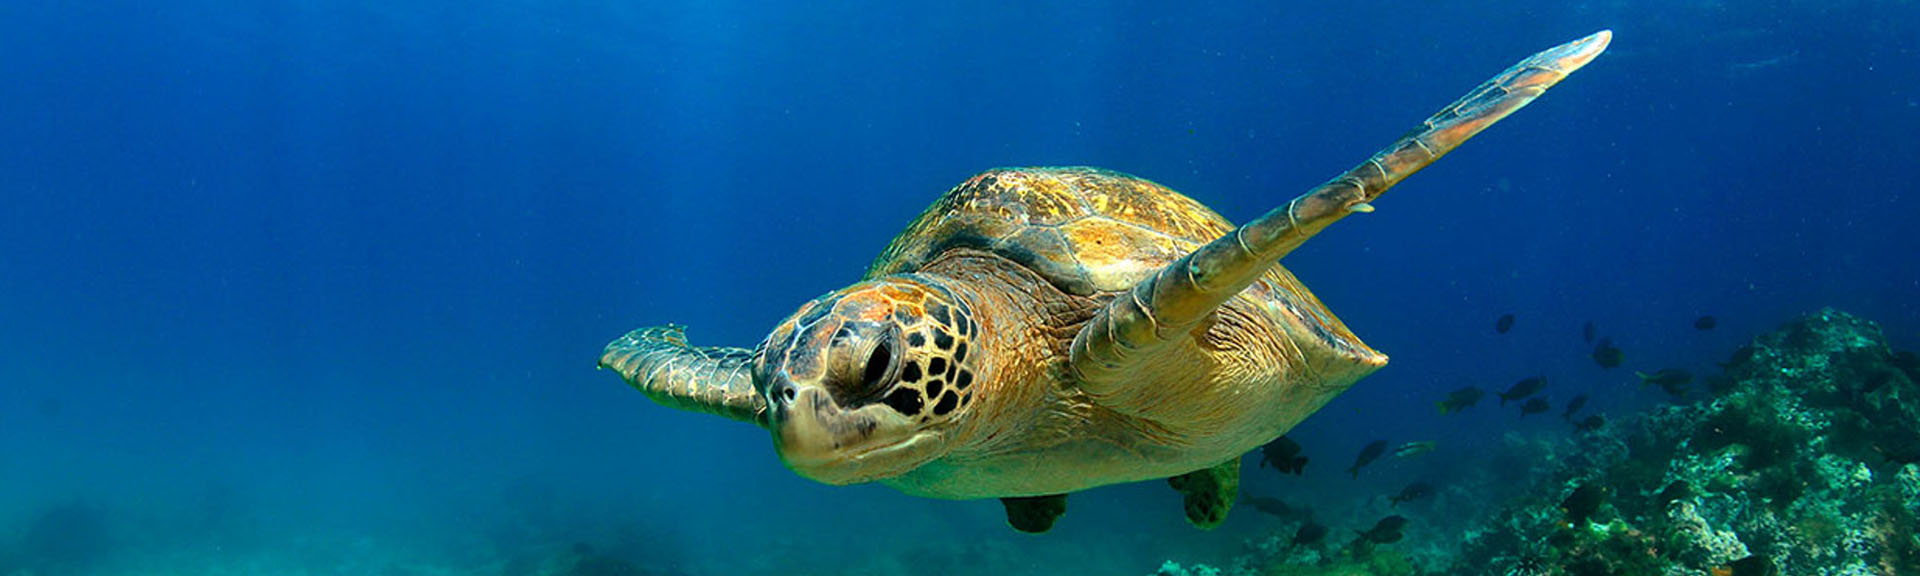 Green sea turtle swimming underwater in lagoon